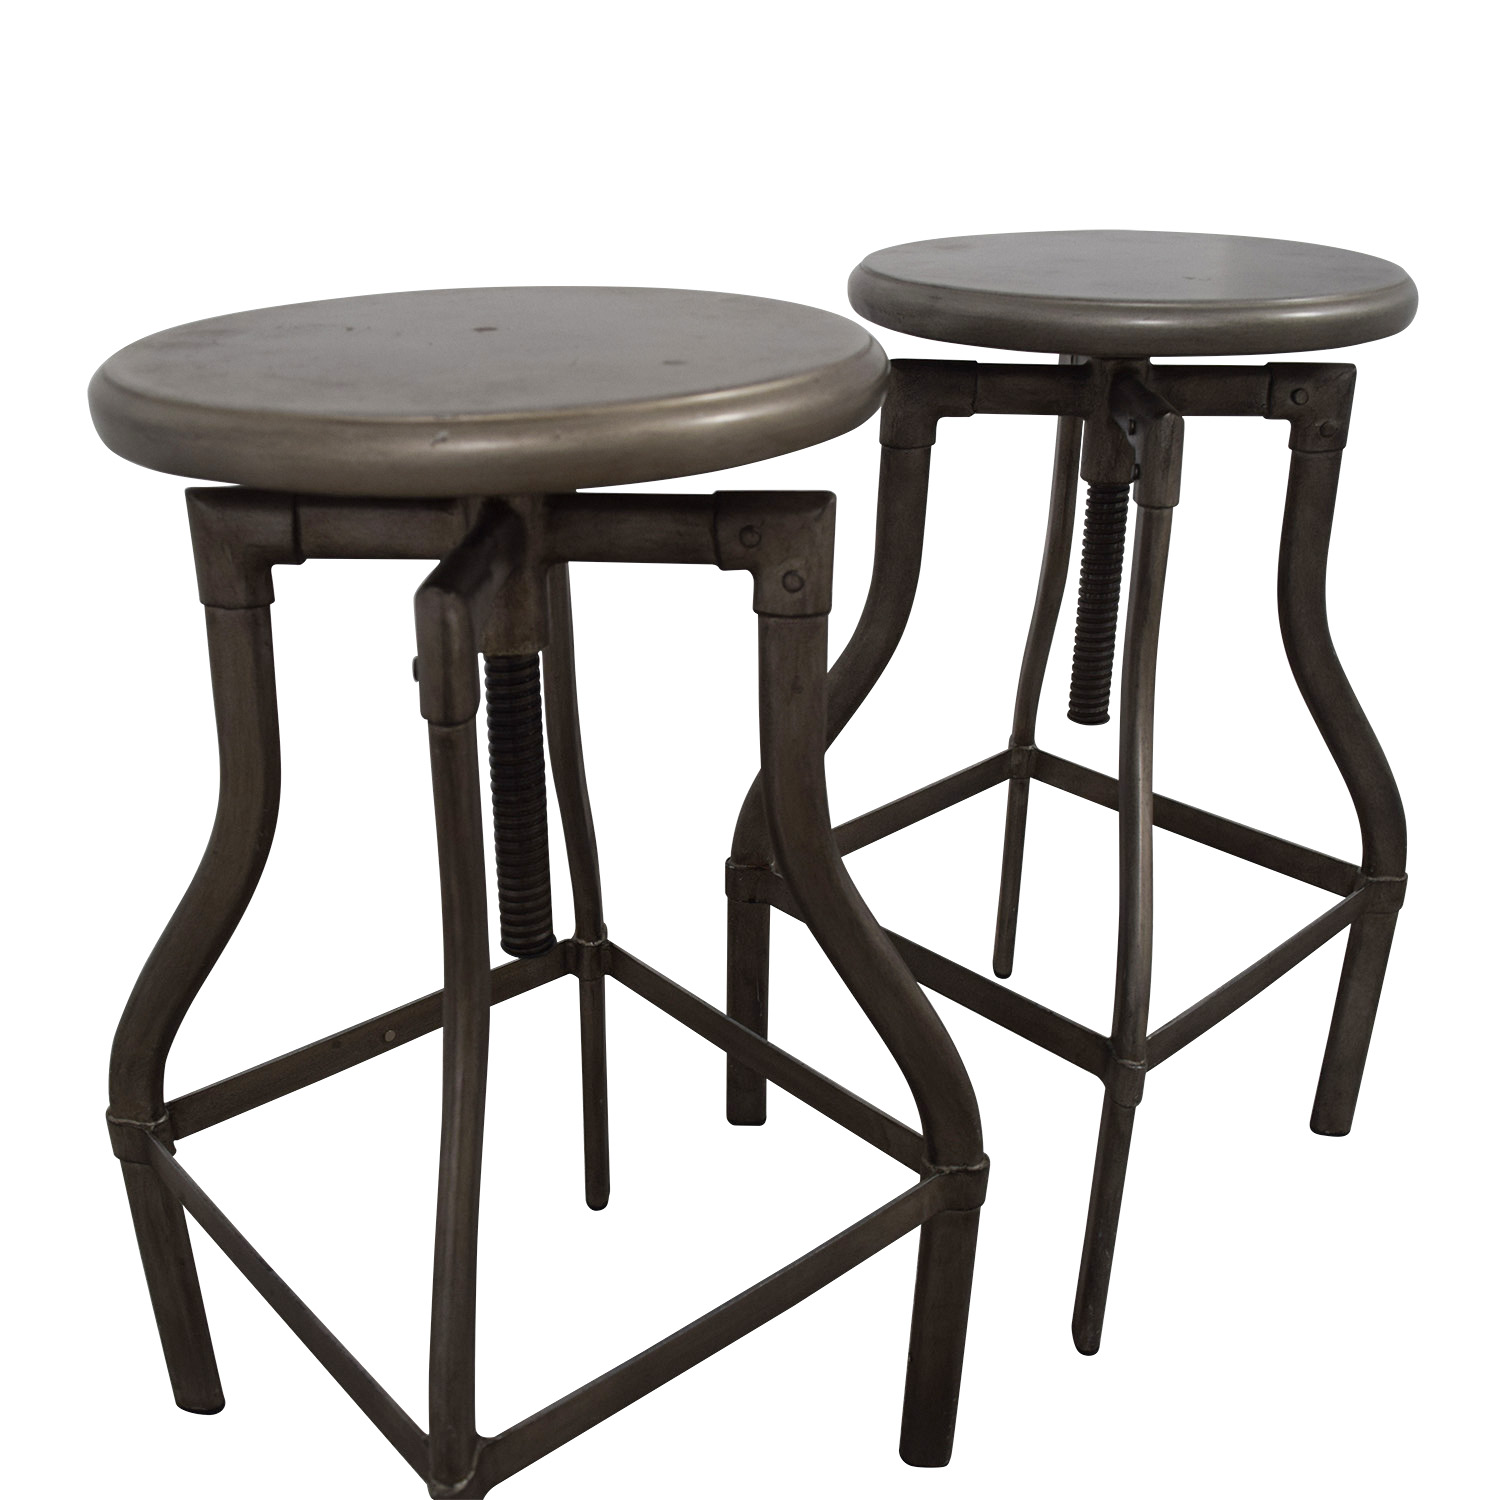 buy Crate & Barrel Turner Bar Stools Crate & Barrel